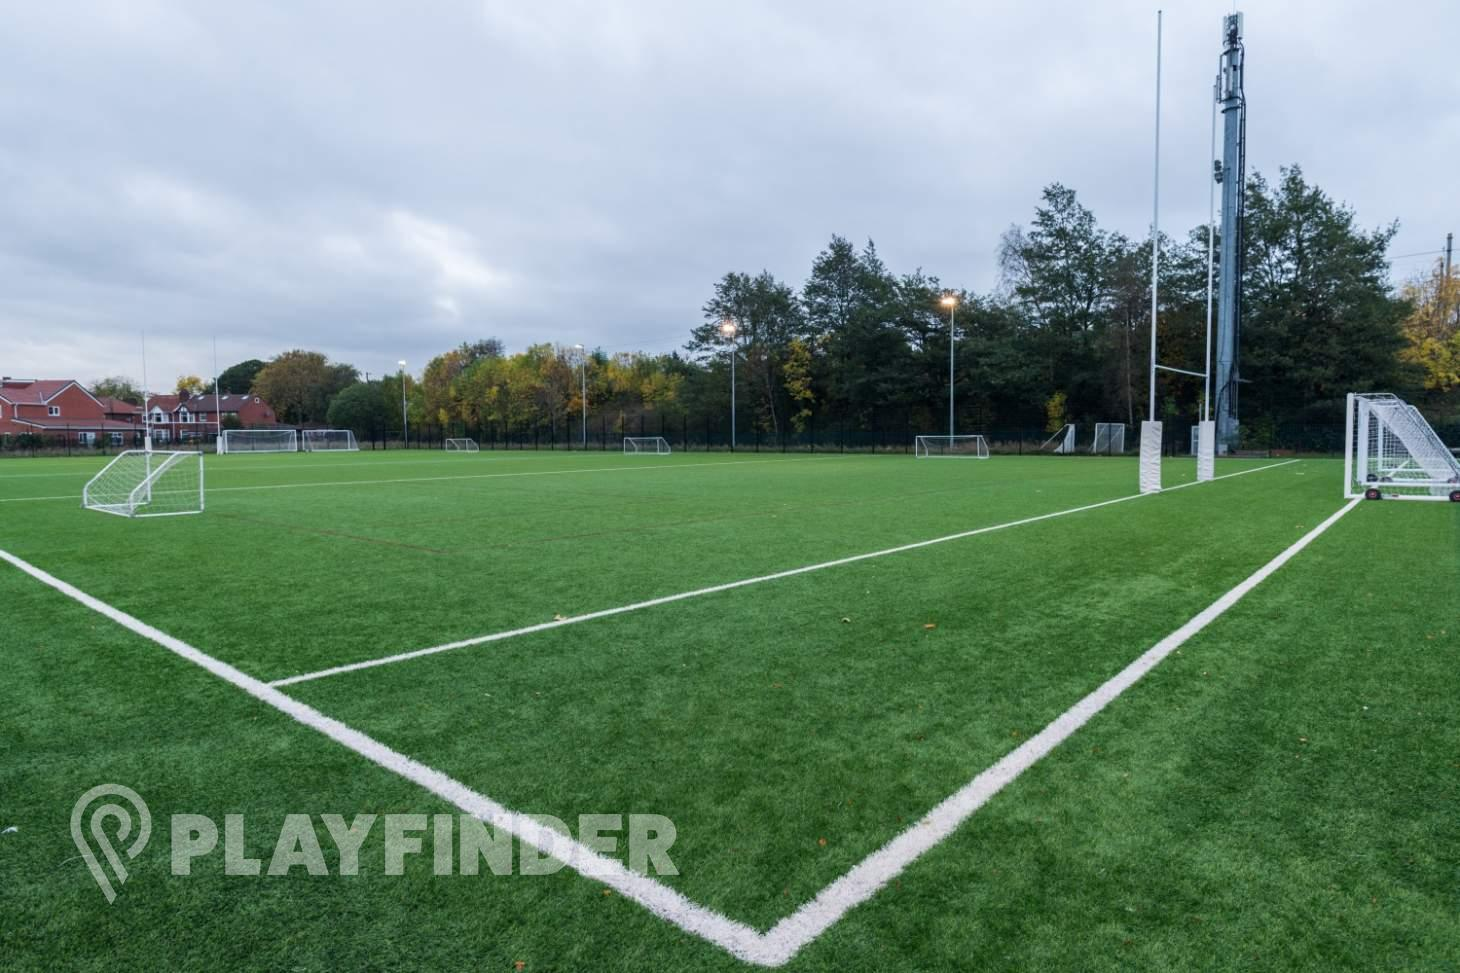 Manchester Enterprise Academy Central 5 a side | 3G Astroturf football pitch